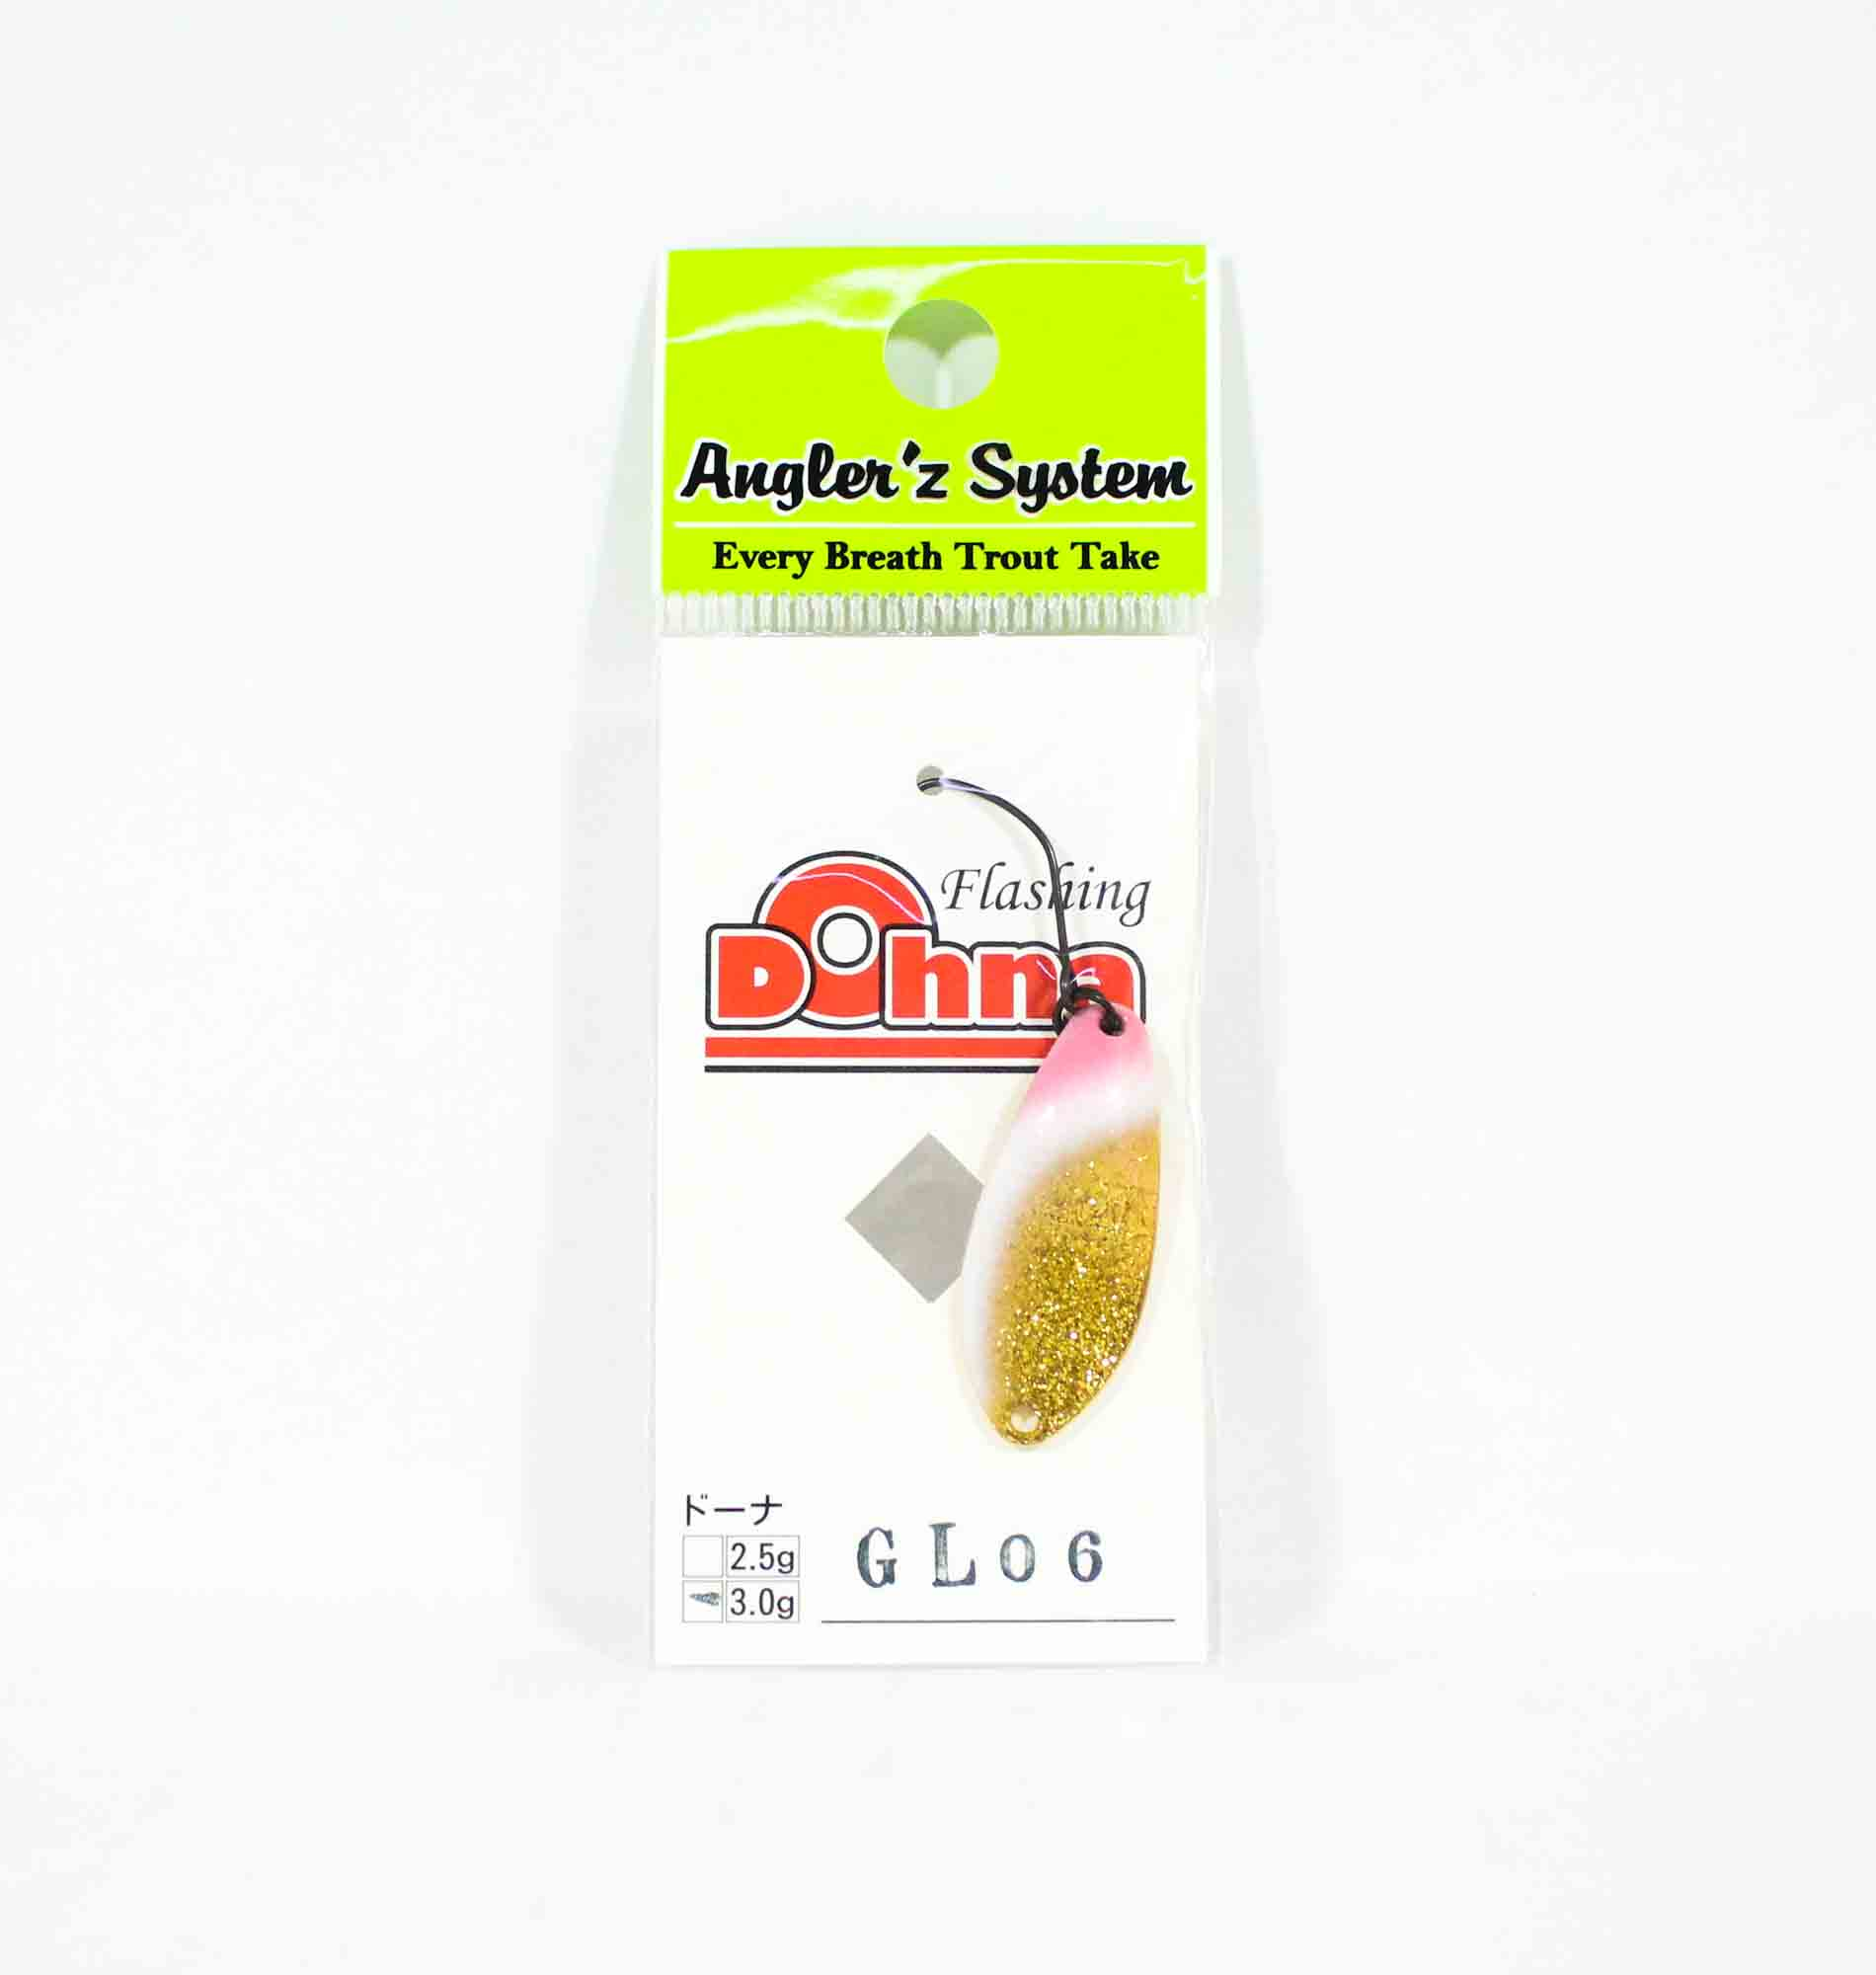 Anglers System Antem Dohna 3.0 grams Spoon Sinking Lure GL06 (6710)